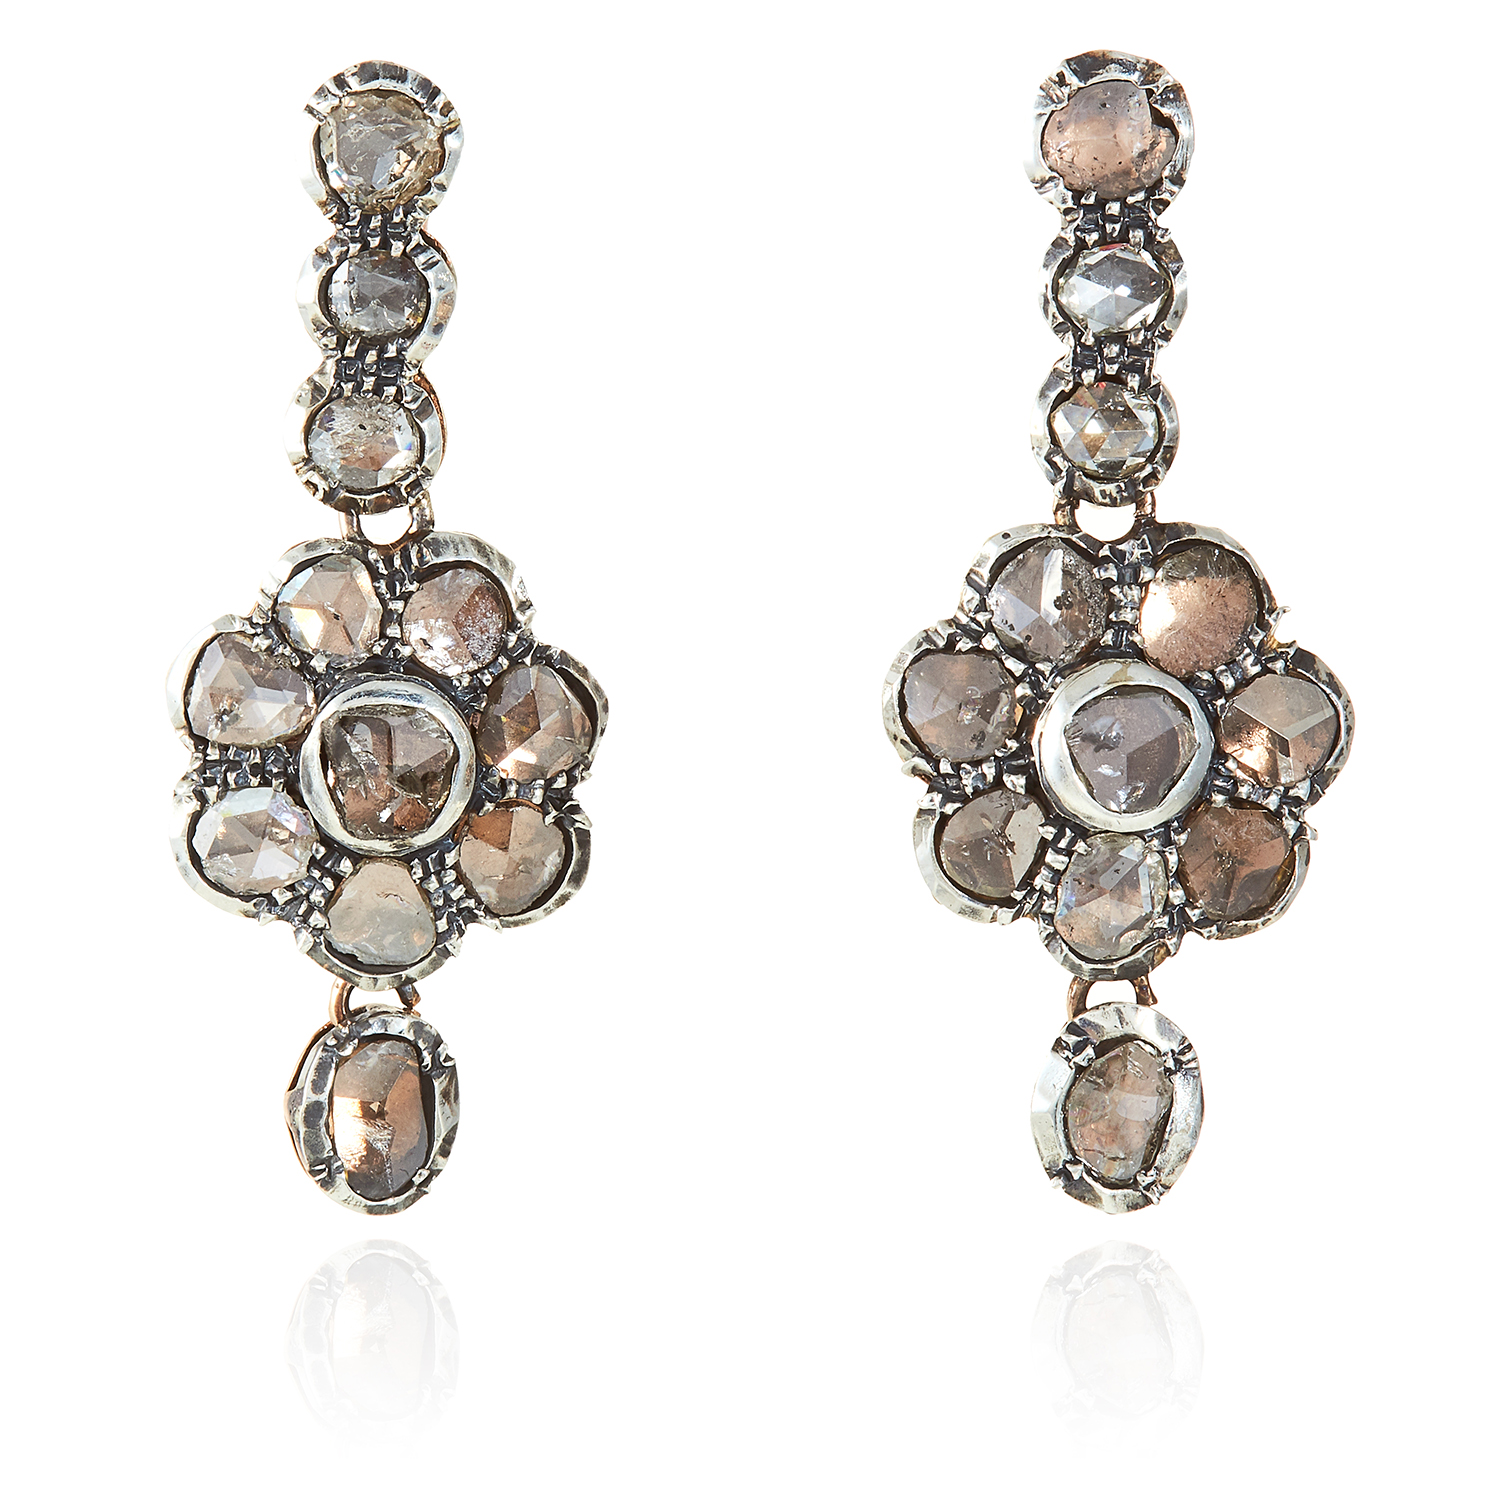 Los 309 - A PAIR OF ANTIQUE DIAMOND EARRINGS in yellow gold and silver, the articulated bodies jewelled with